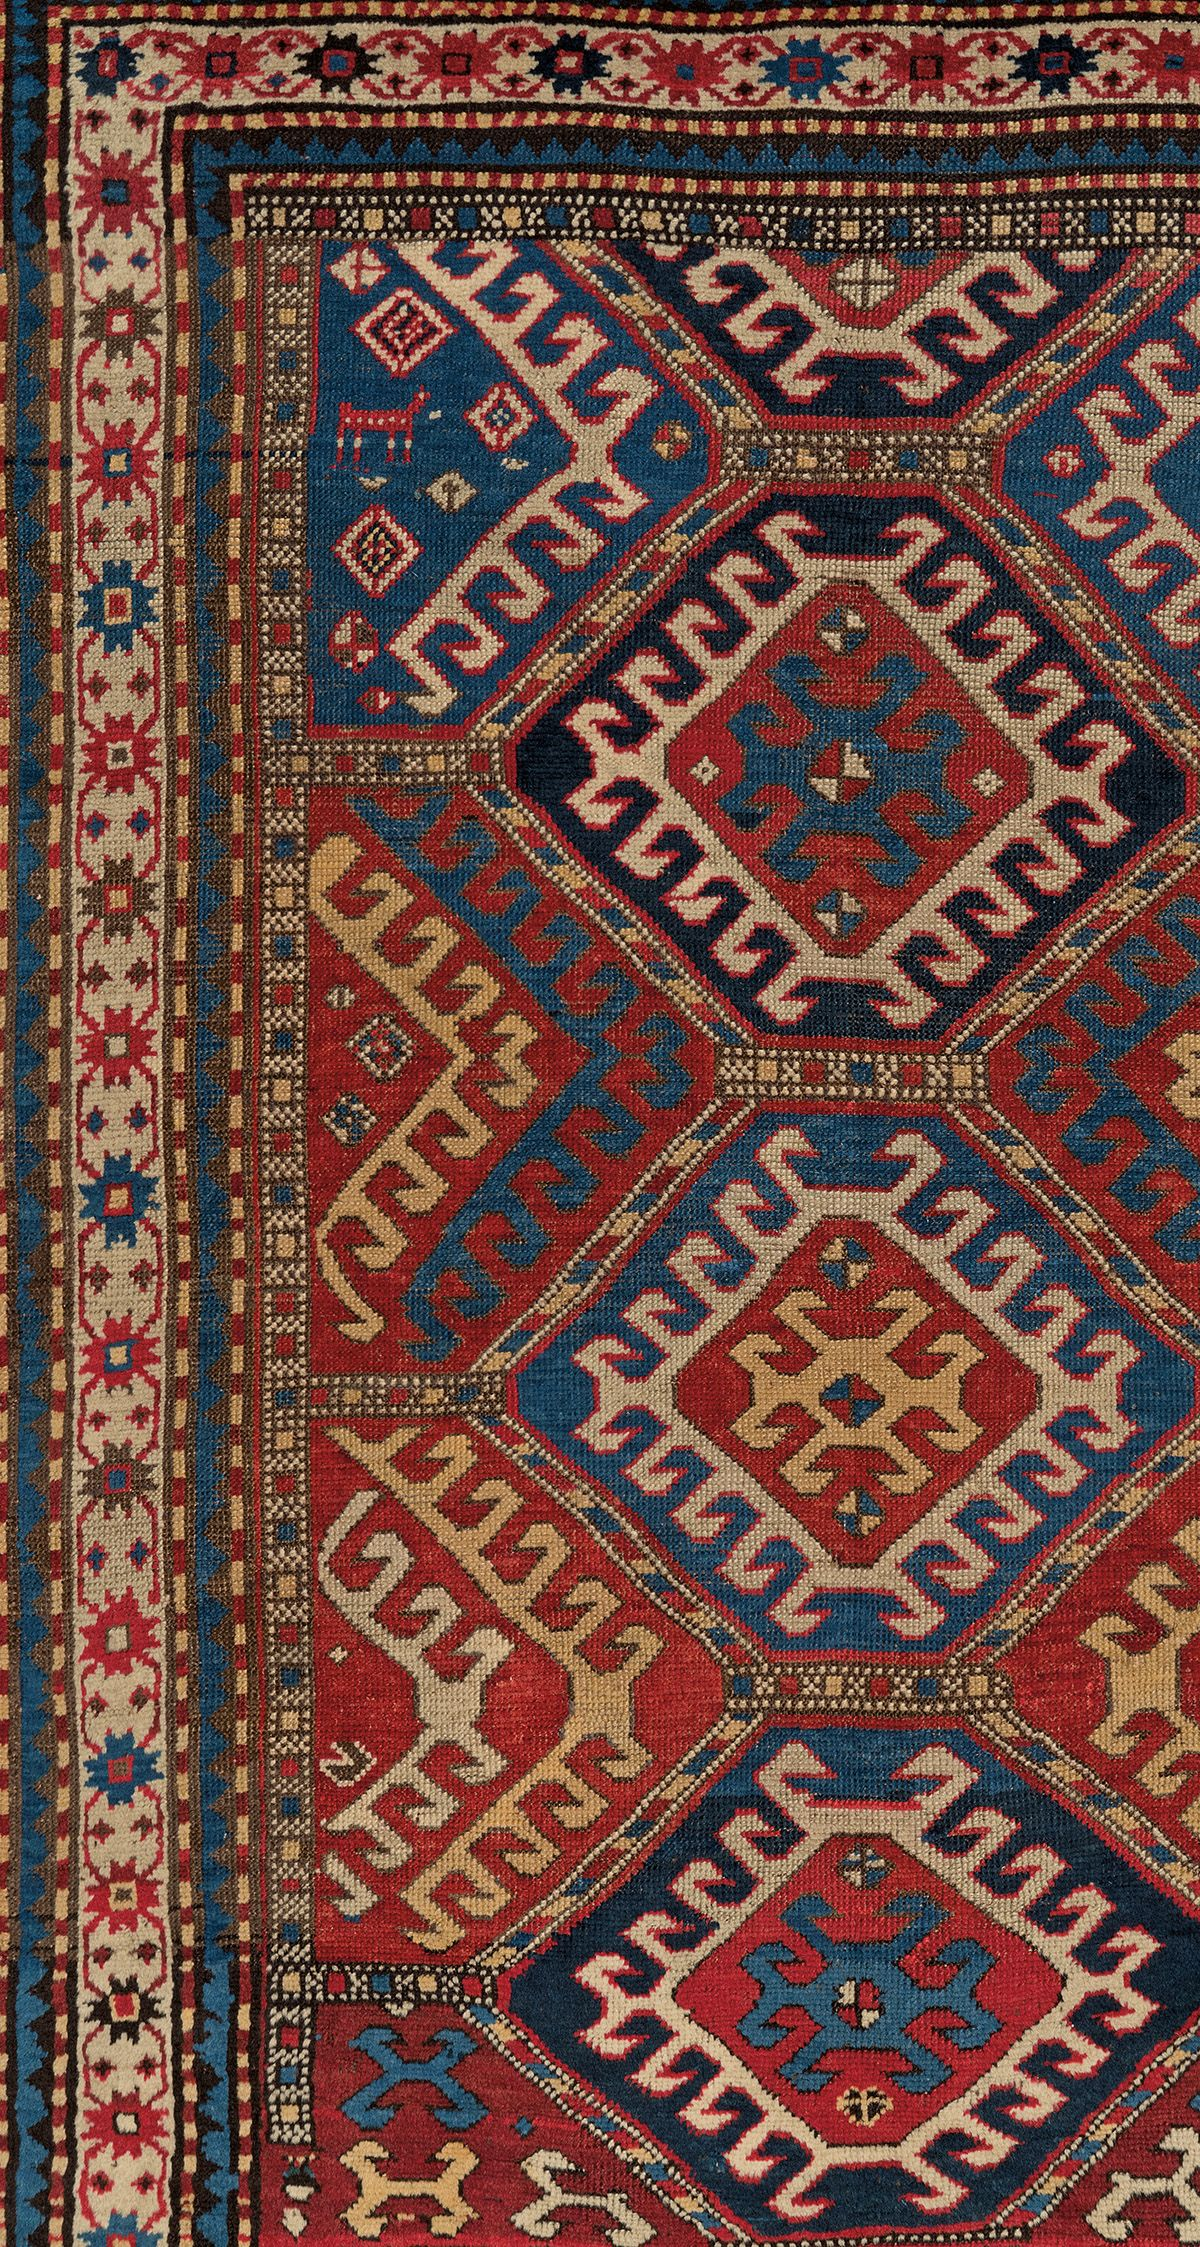 Antique Southwest Caucasian Karabagh With Wheel Of Life Medallions And Tribal Devices Antique Rug Claremont Rug Compan In 2020 Claremont Rug Company Rugs Rug Company